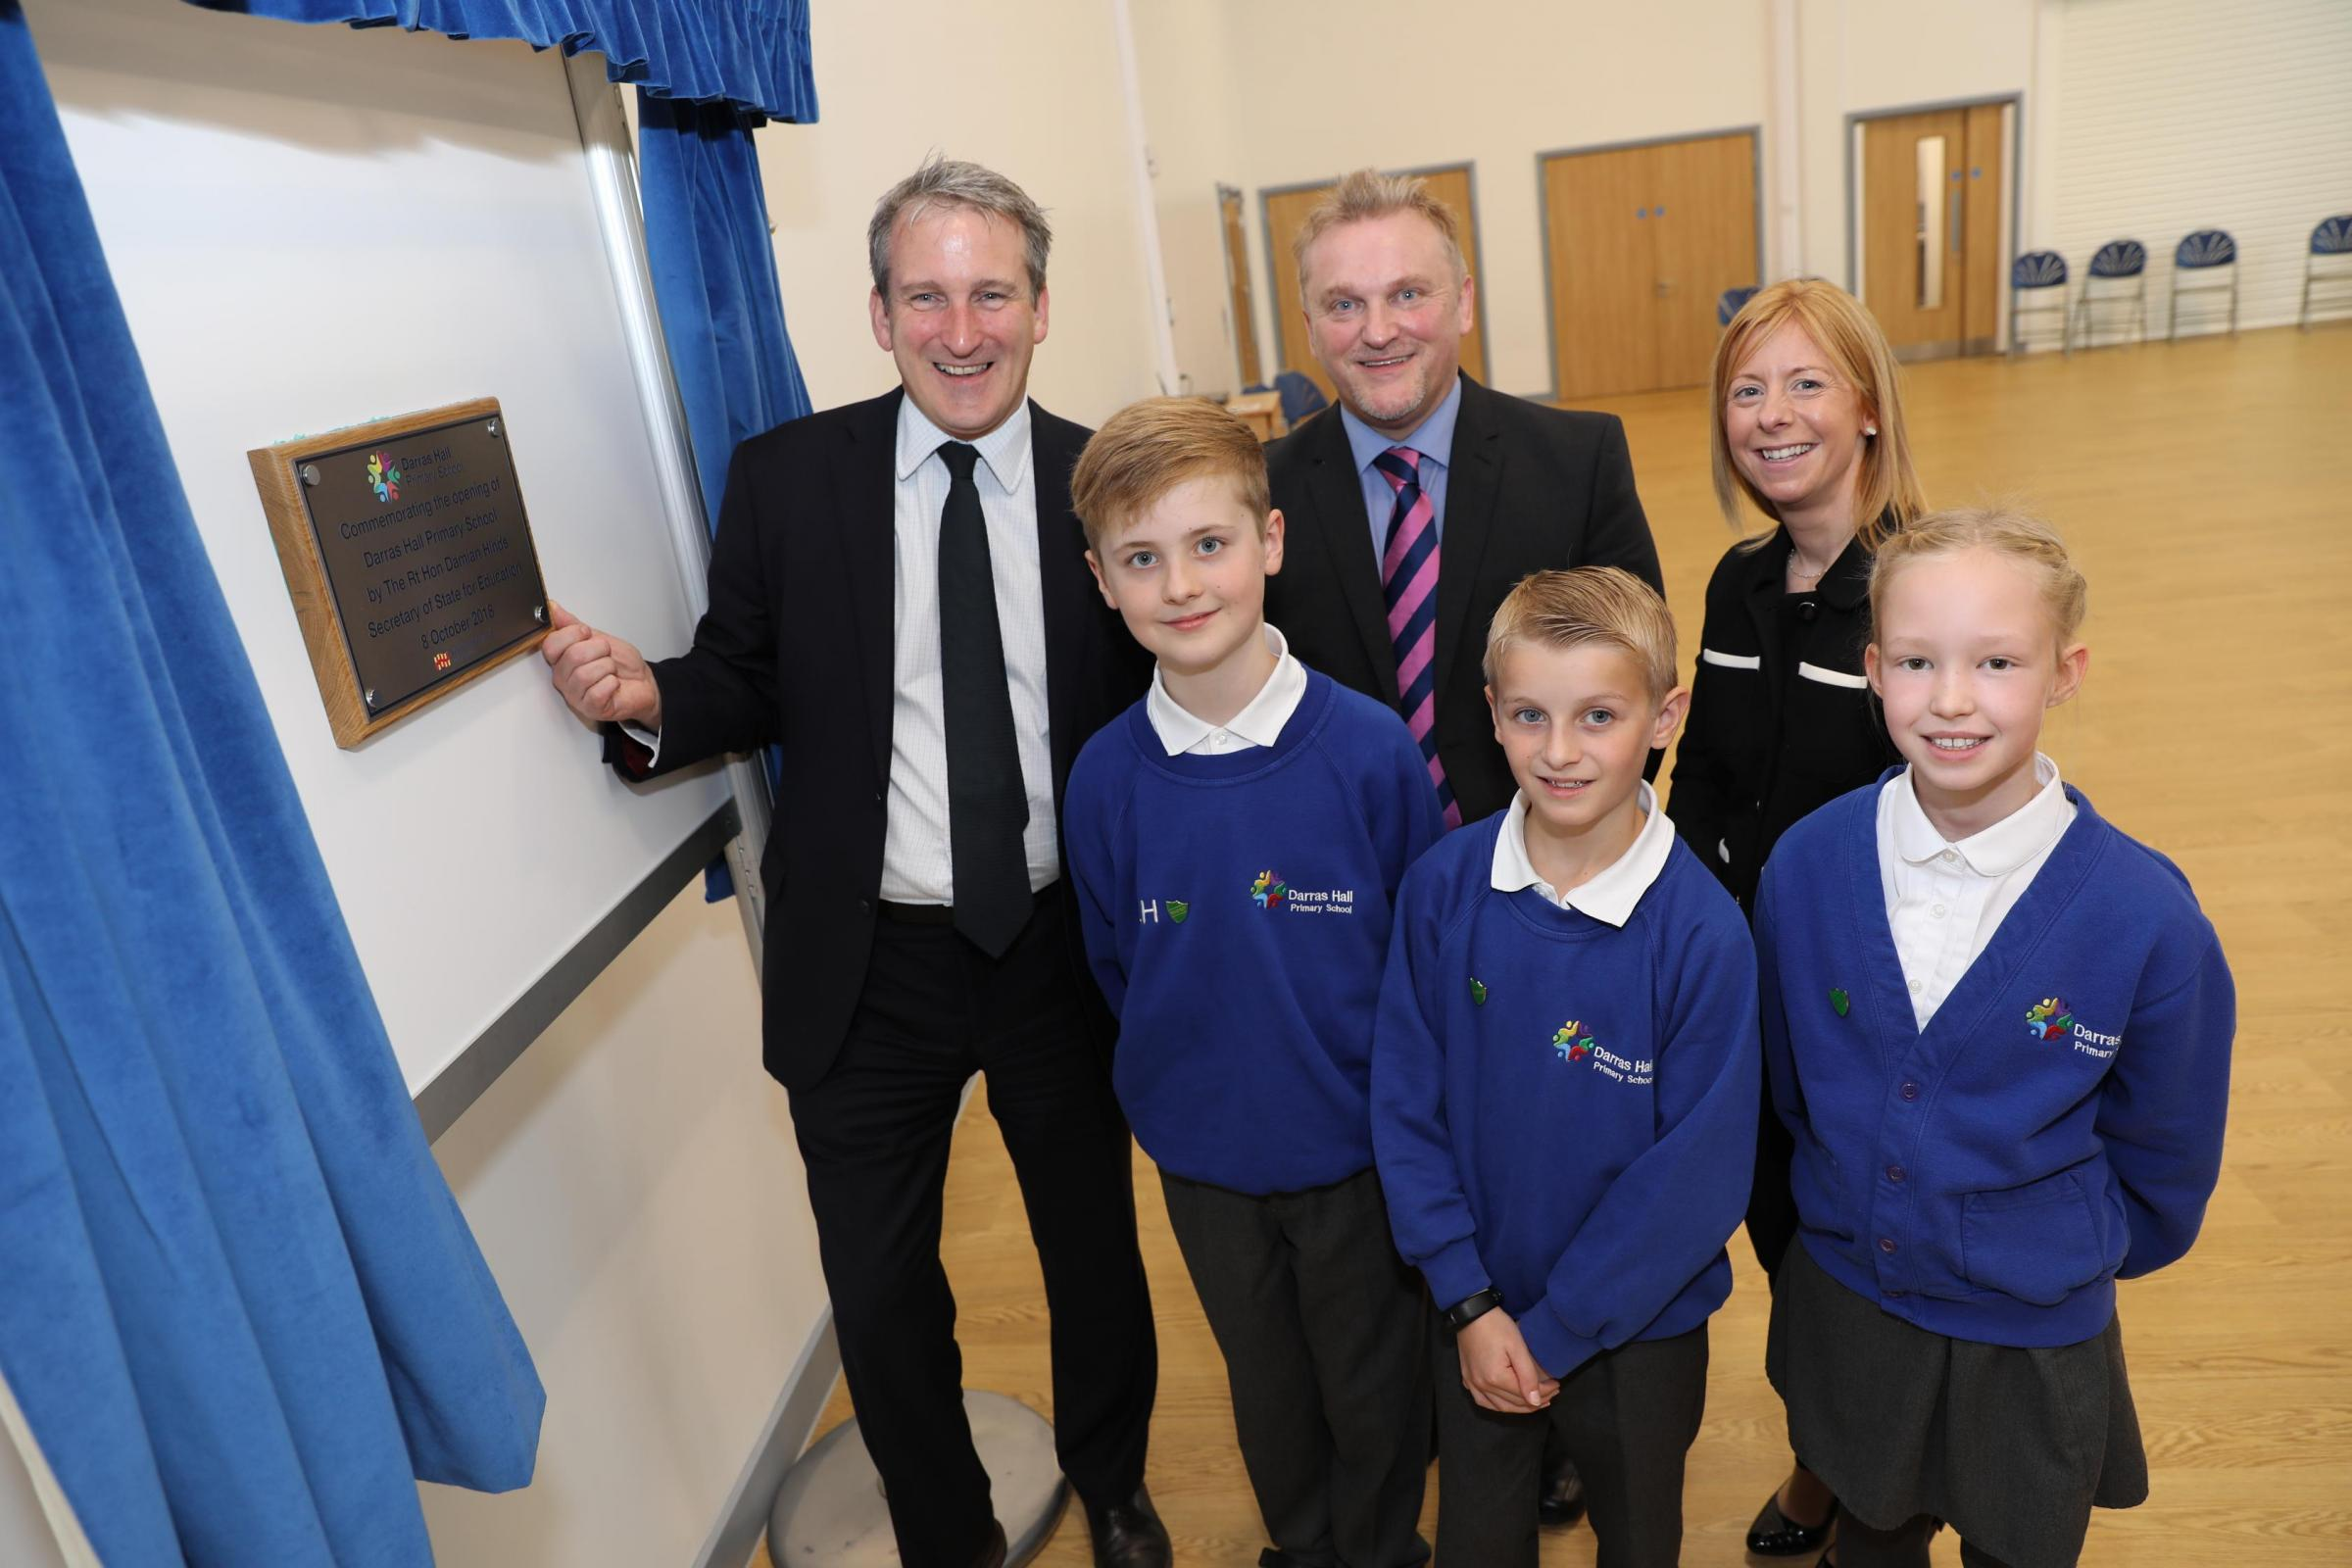 From the left, Education Secretary Damian Hinds, Northumberland County Council cabinet member for children's services Wayne Daley, headteacher Victoria Parr and head pupils Laurence Hattaway, Adam Secker and Charlotte Courtney at the unveiling of th